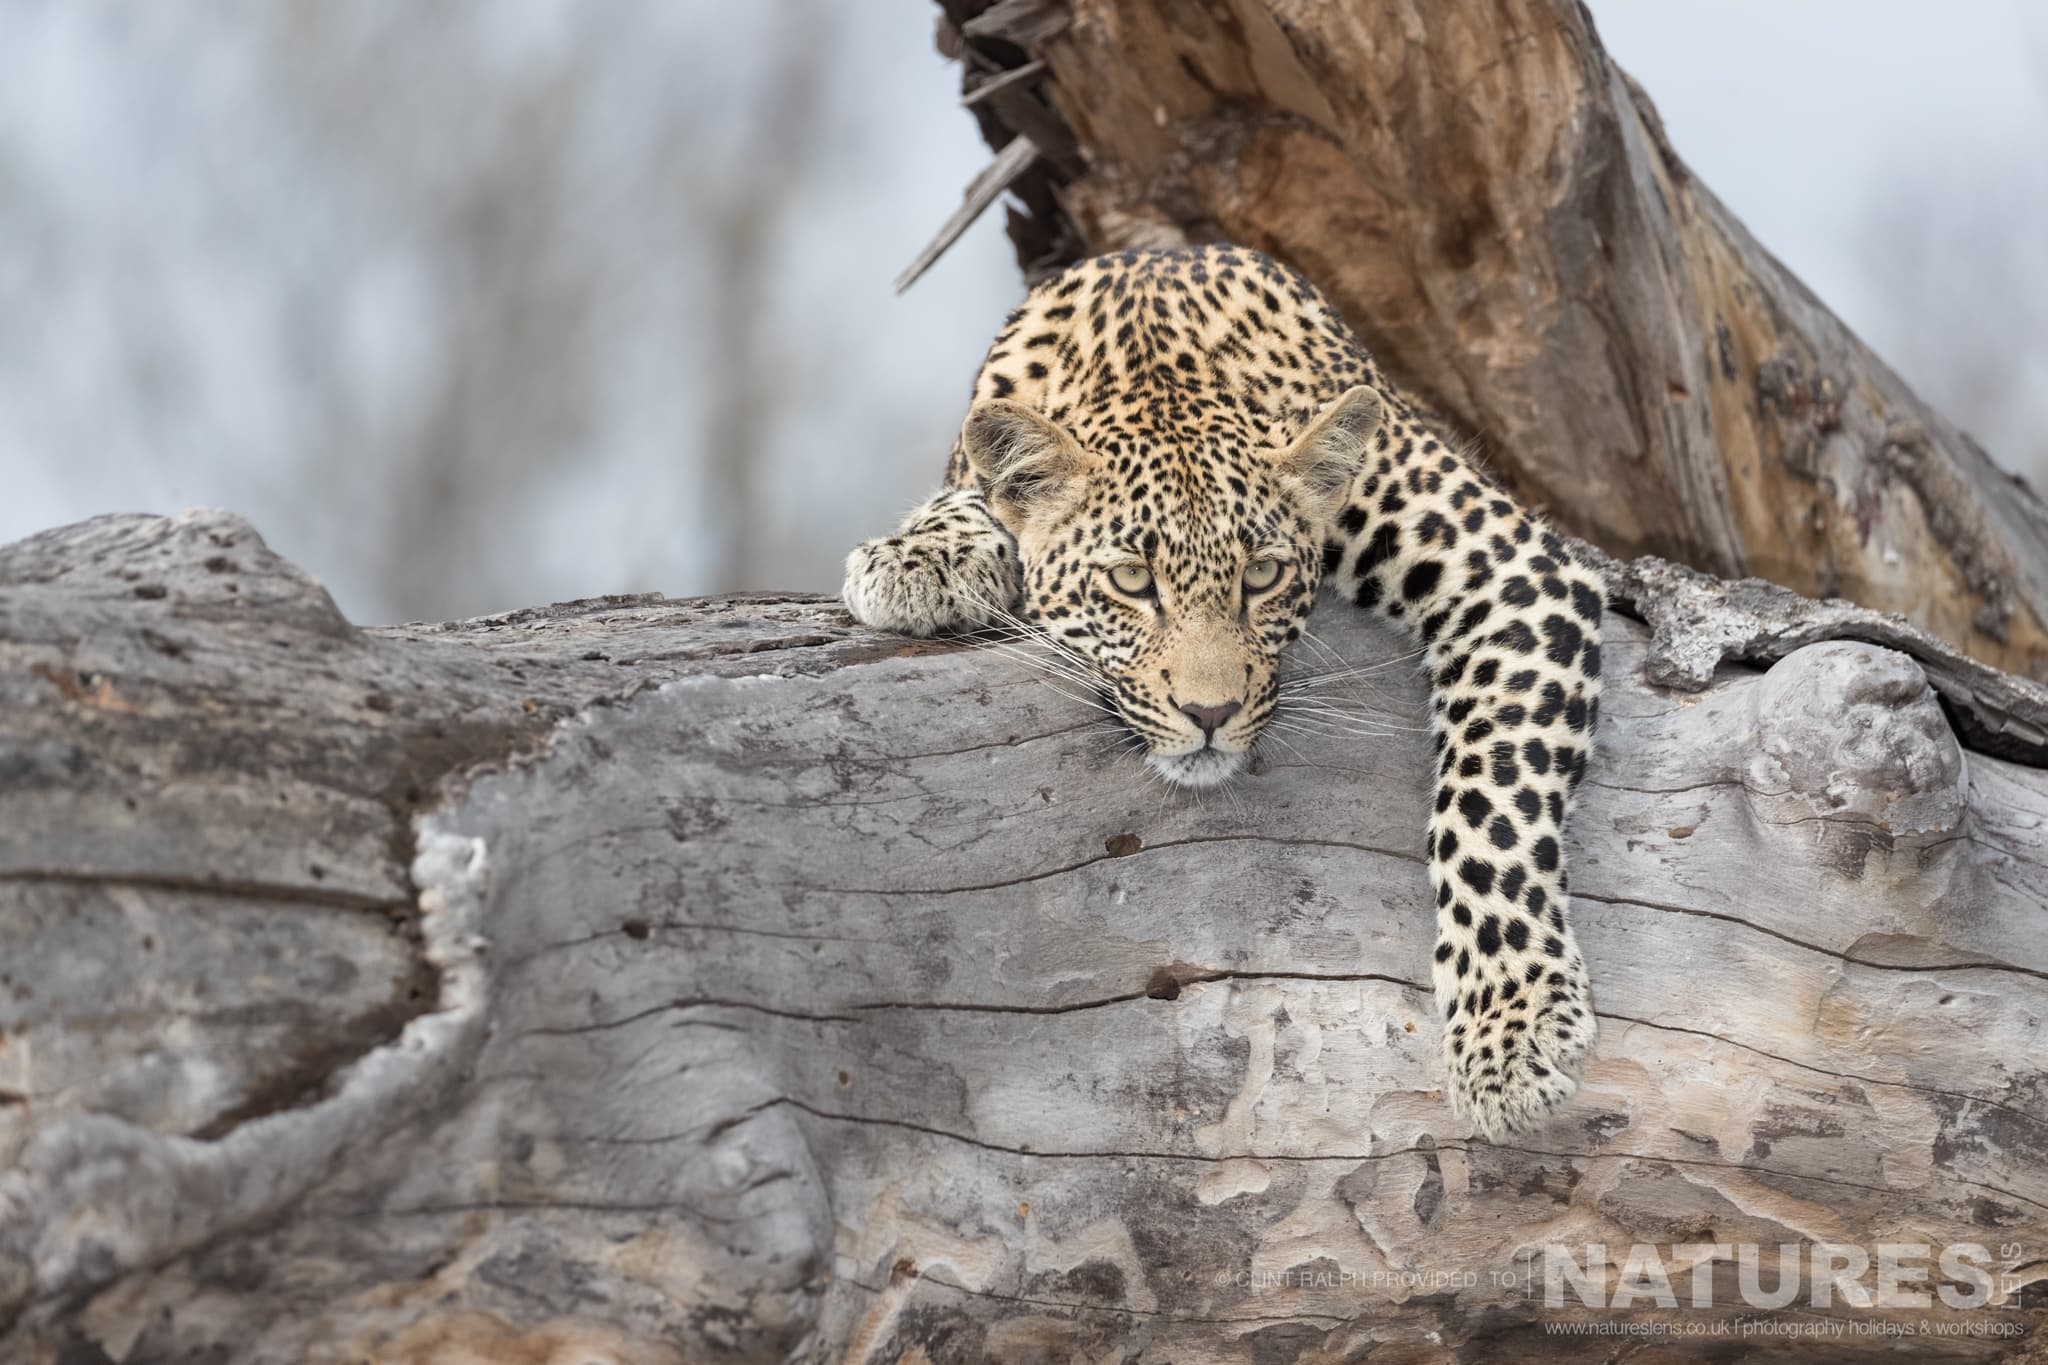 One of the leopards of Sabi Sands draped over a fallen tree photographed on the reserve used for the NaturesLens Leopards of Sabi Sands Photography Holiday